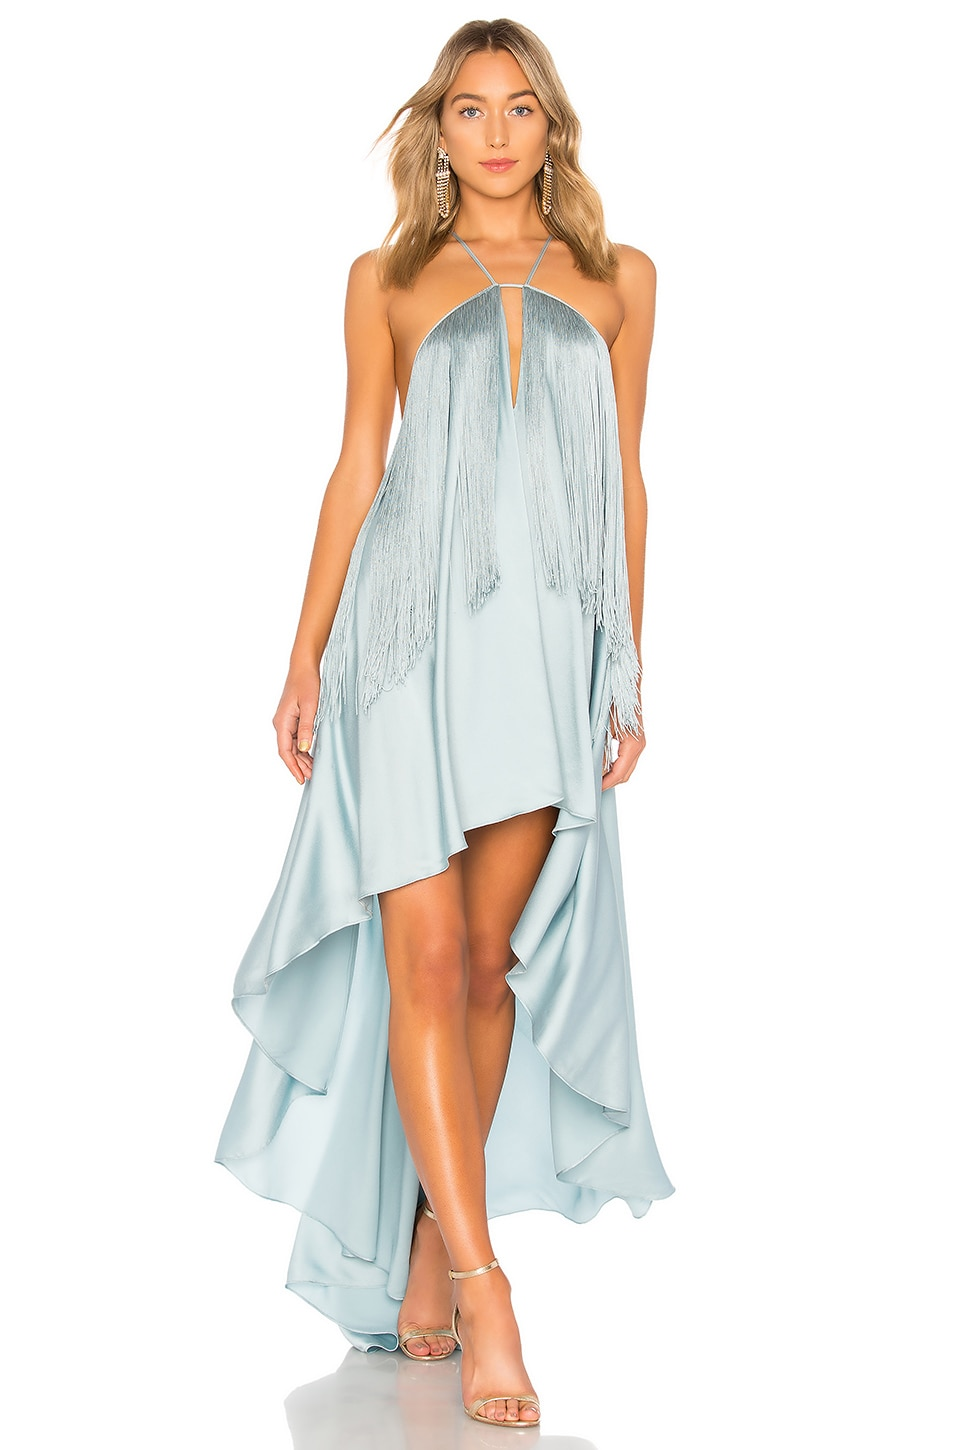 Michael Costello x REVOLVE Generosity Dress in Seafoam